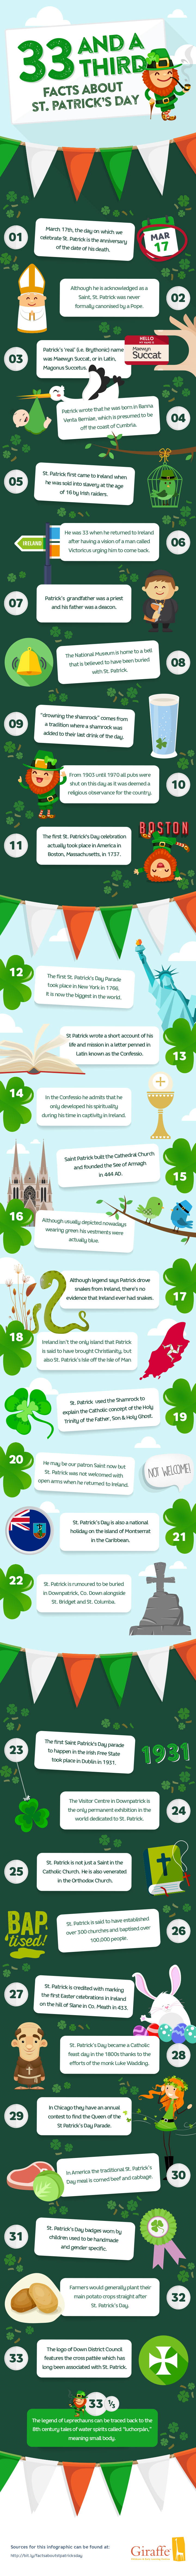 Saint Patrick's Day Facts